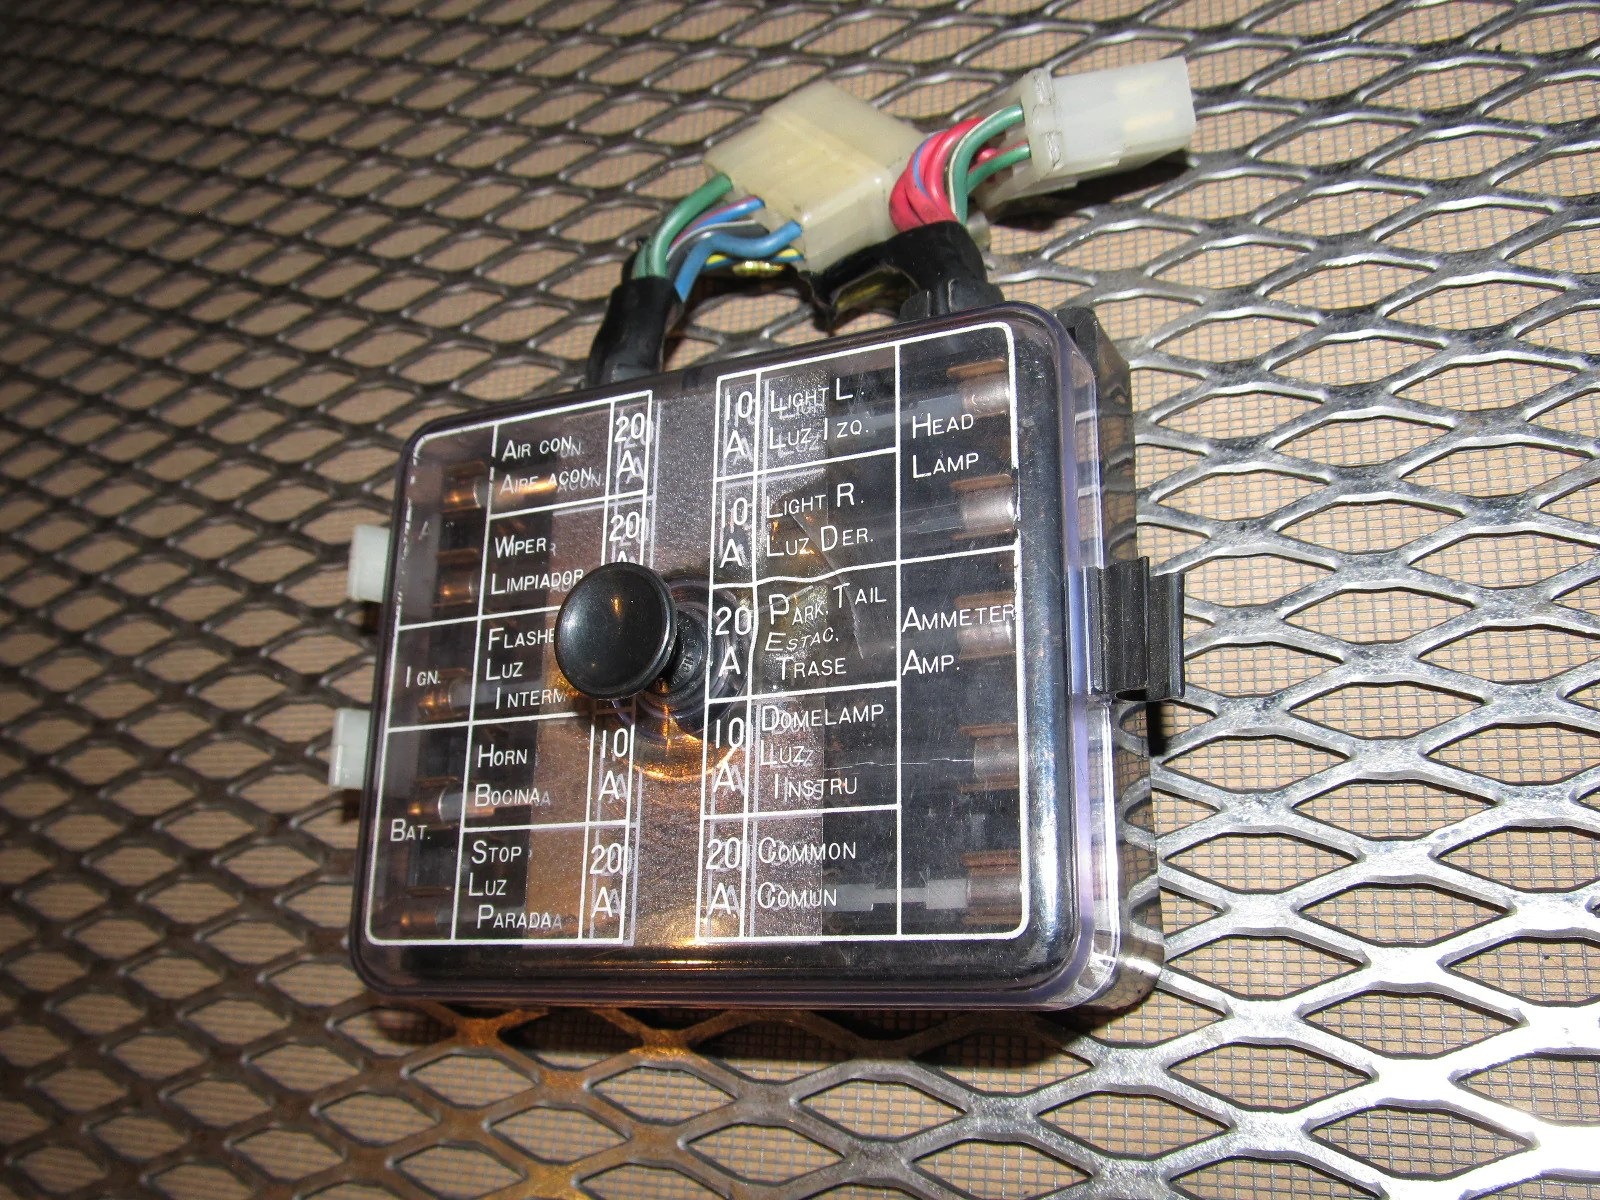 hight resolution of rx7 convertible fuse box 1988 mazda rx 7 convertible parts 1990 mazda rx7 fuse box diagram